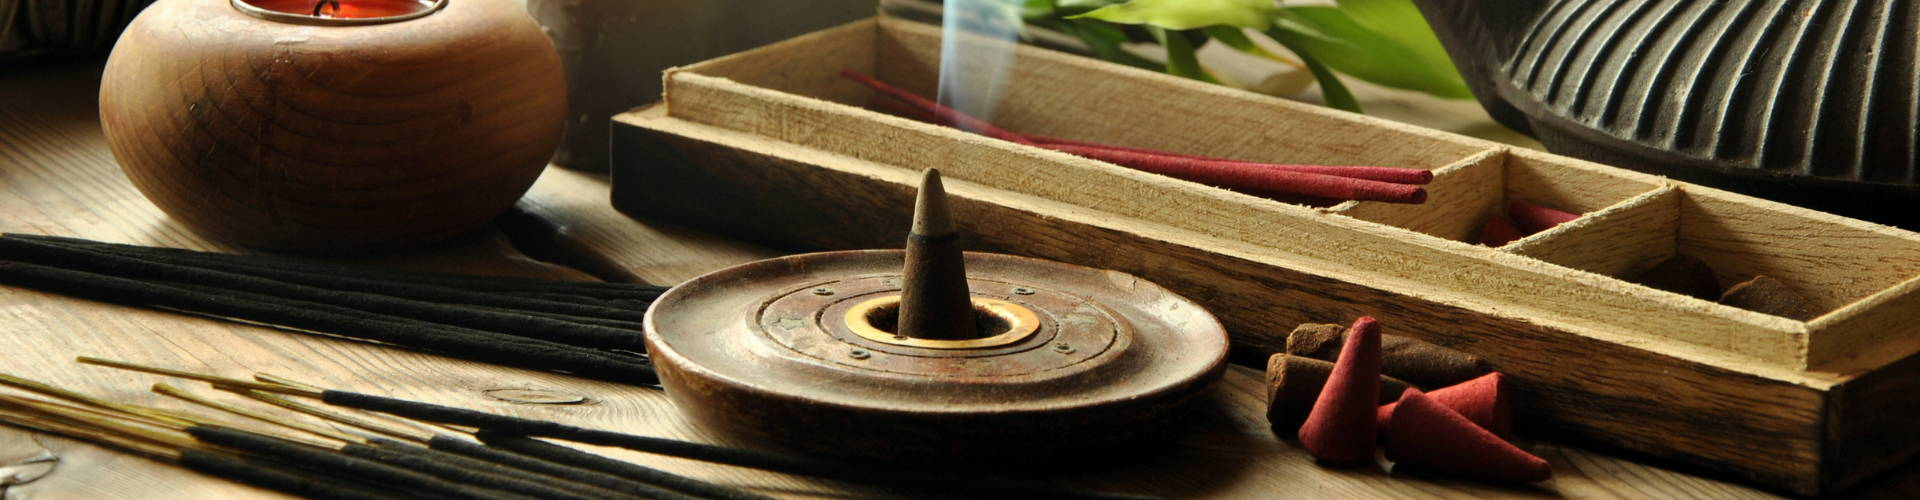 incense cone burning